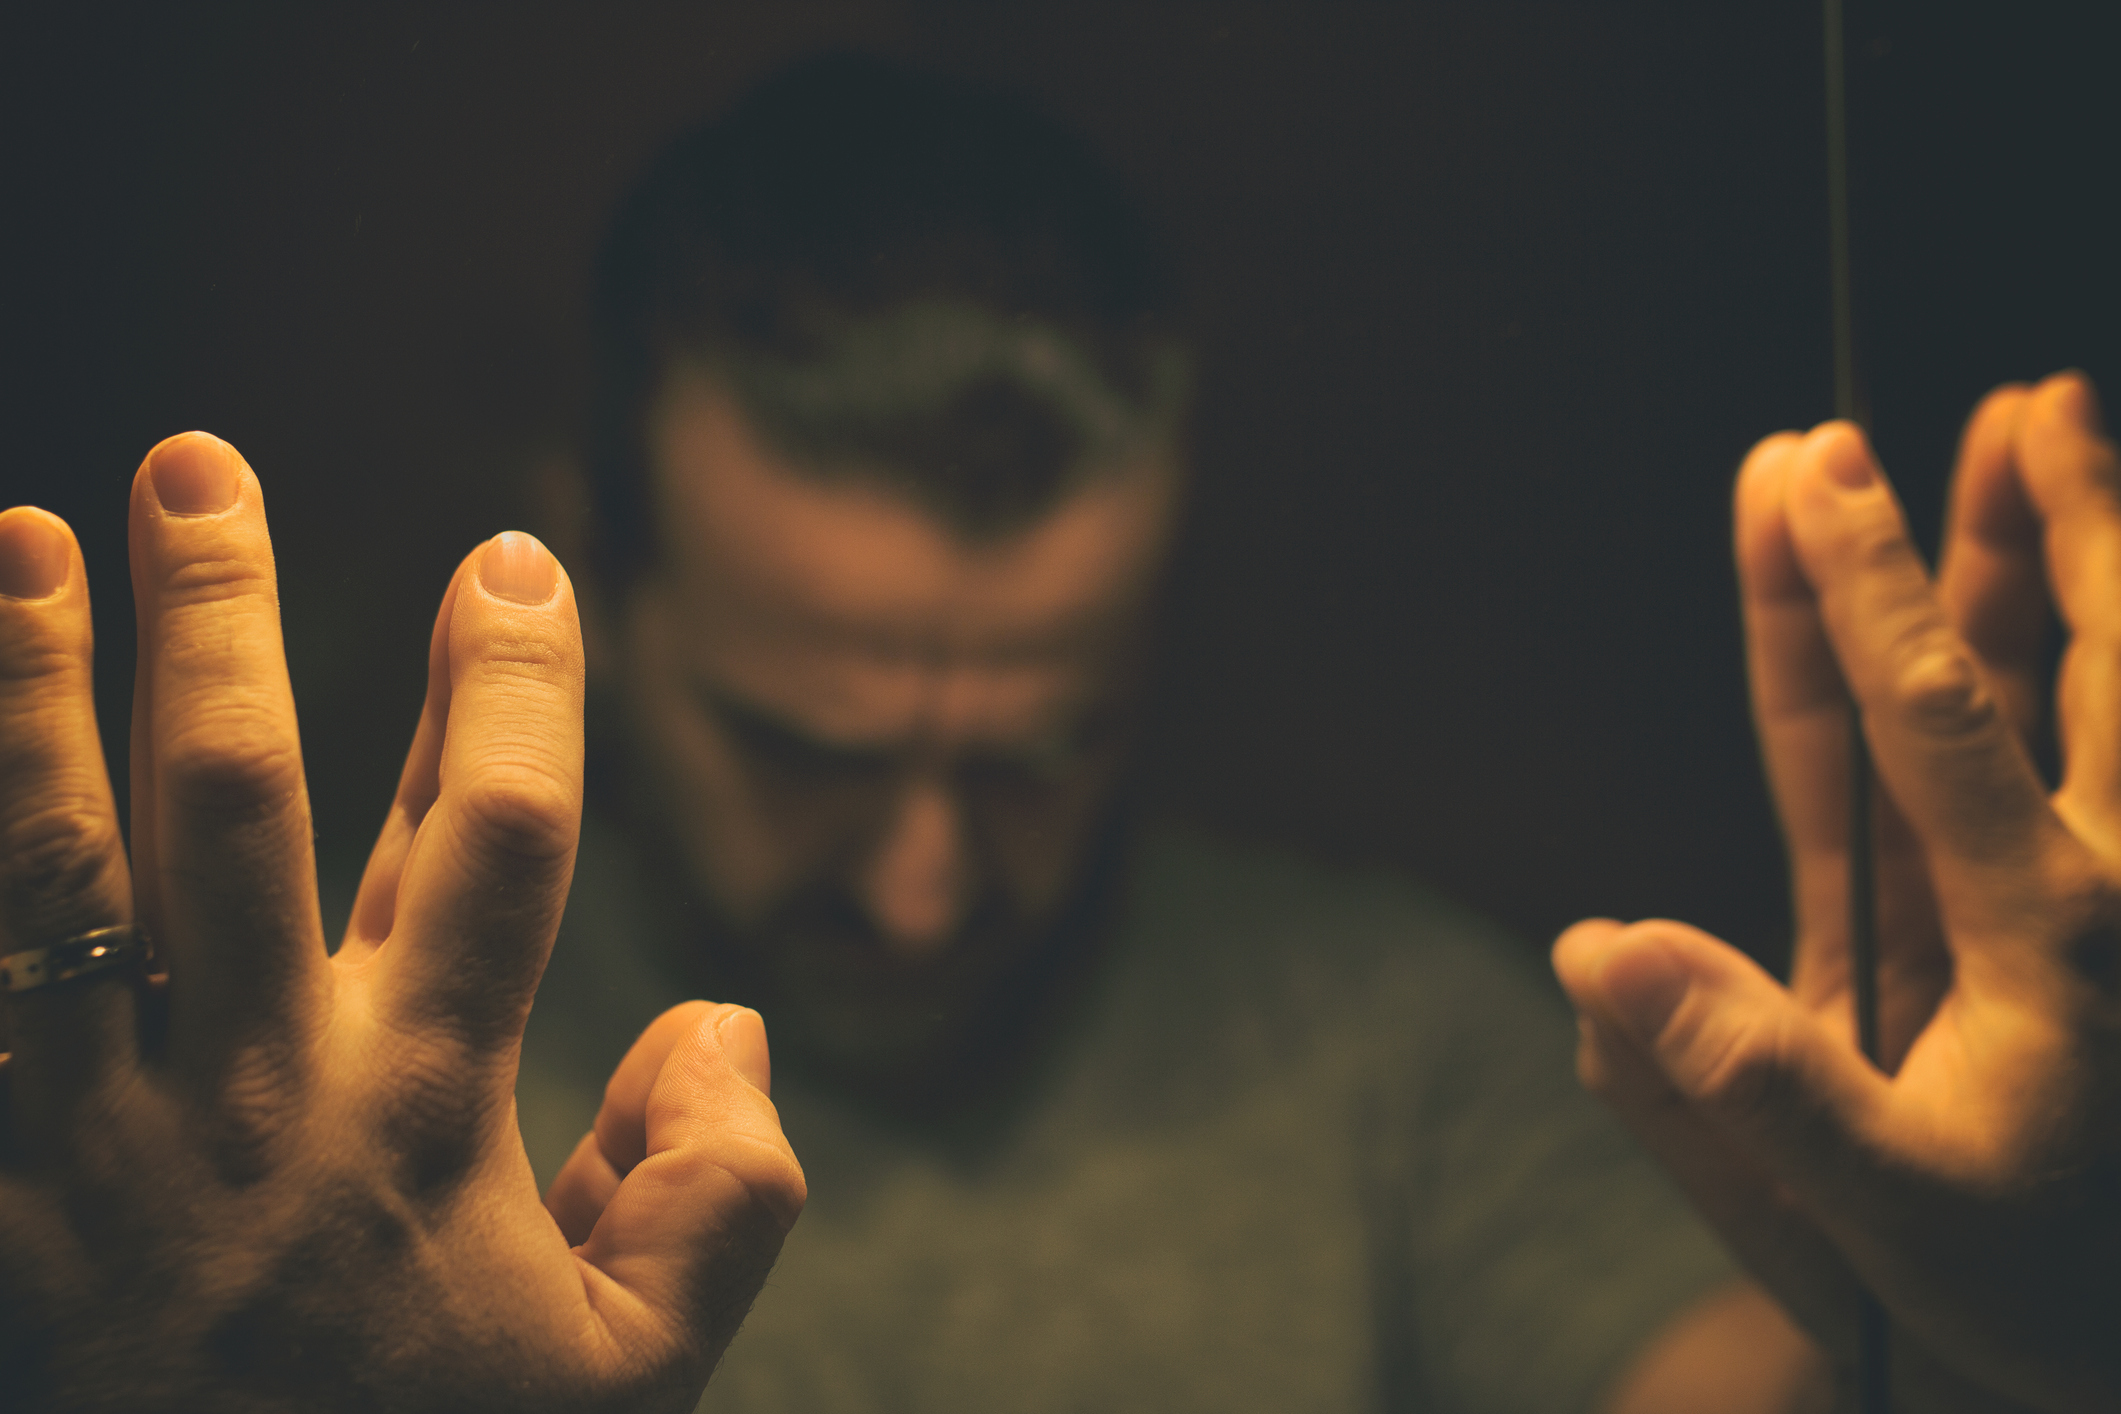 Man in despair with raised hands and bowed headd, in a low light room looking in front of mirror